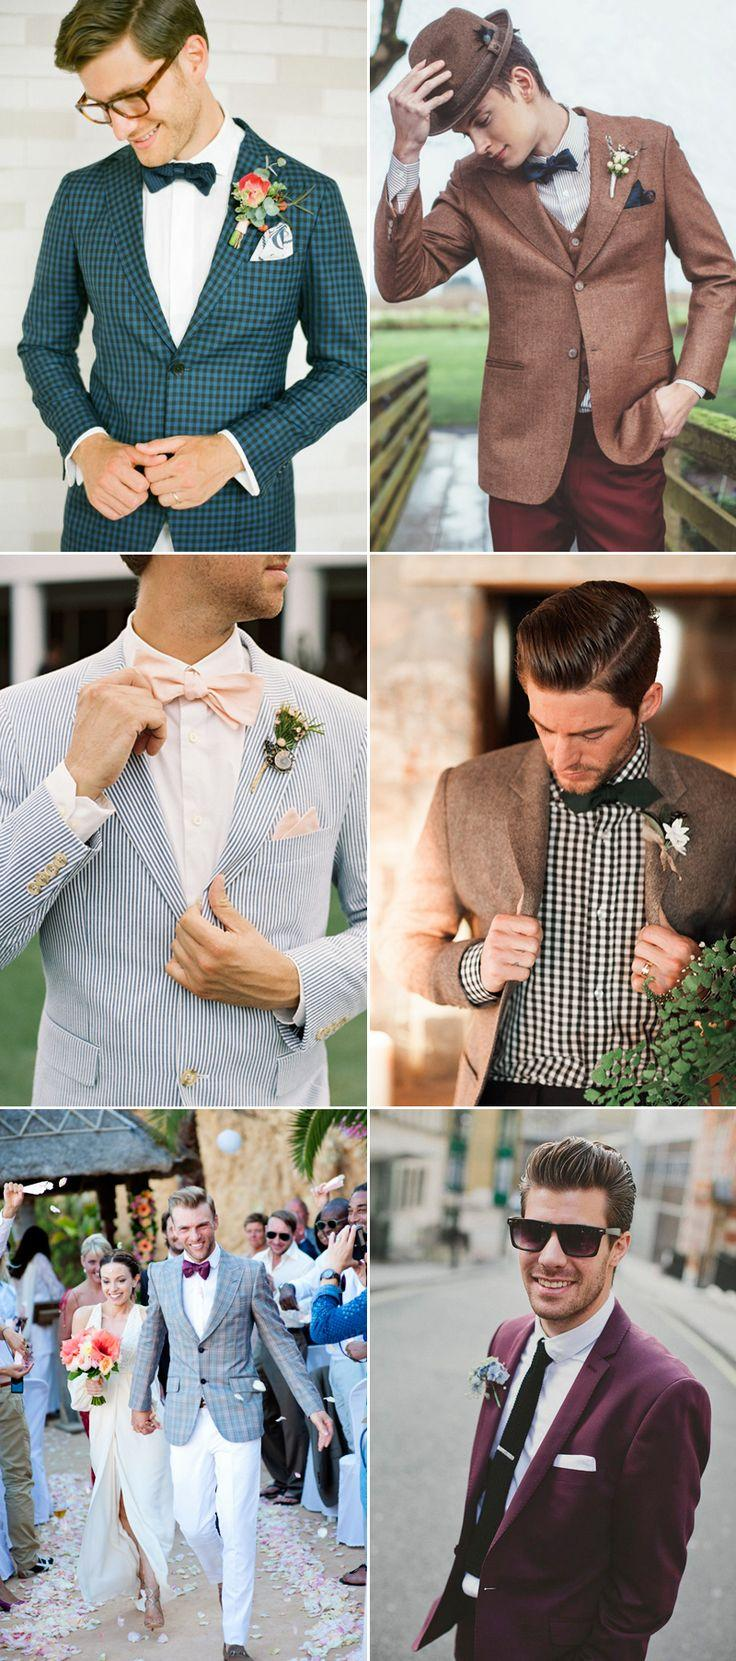 Mariage - How To Style Your Groom Vintage? Ways And Items To Create The Perfect Vintage-Inspired Groom Attire